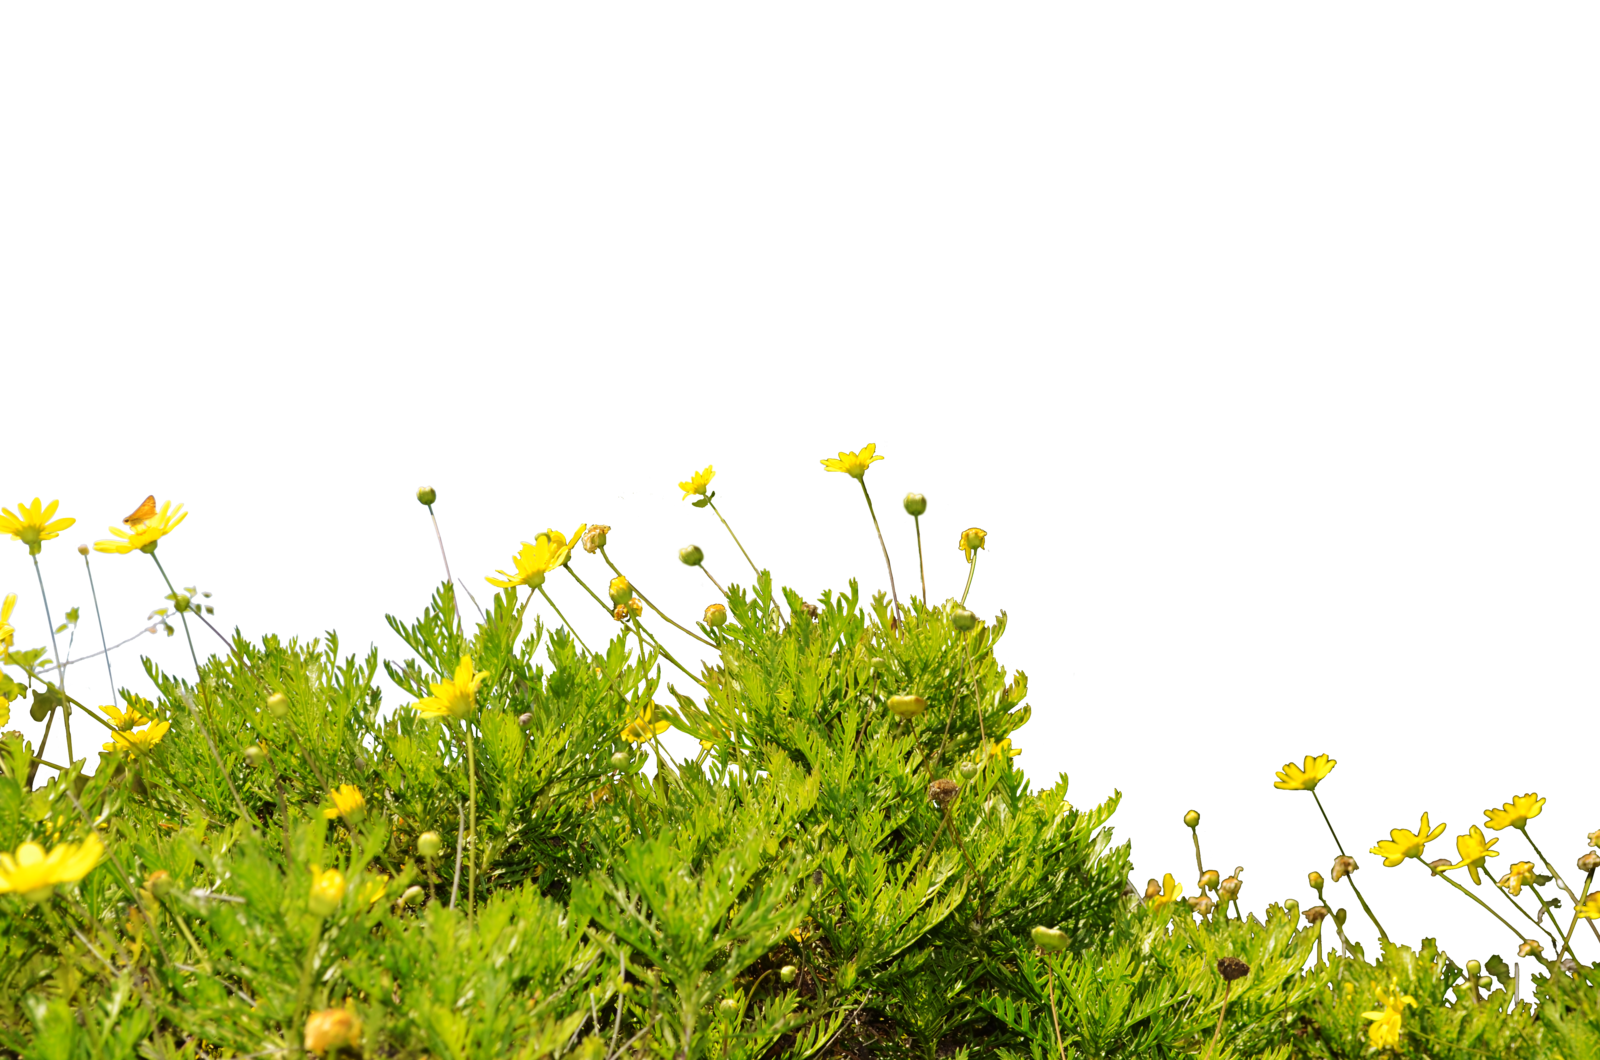 . Hdpng.com Yellow Wildflower Ground Cover Stockphoto 0090 Png By Annamae22 - Wildflowers, Transparent background PNG HD thumbnail